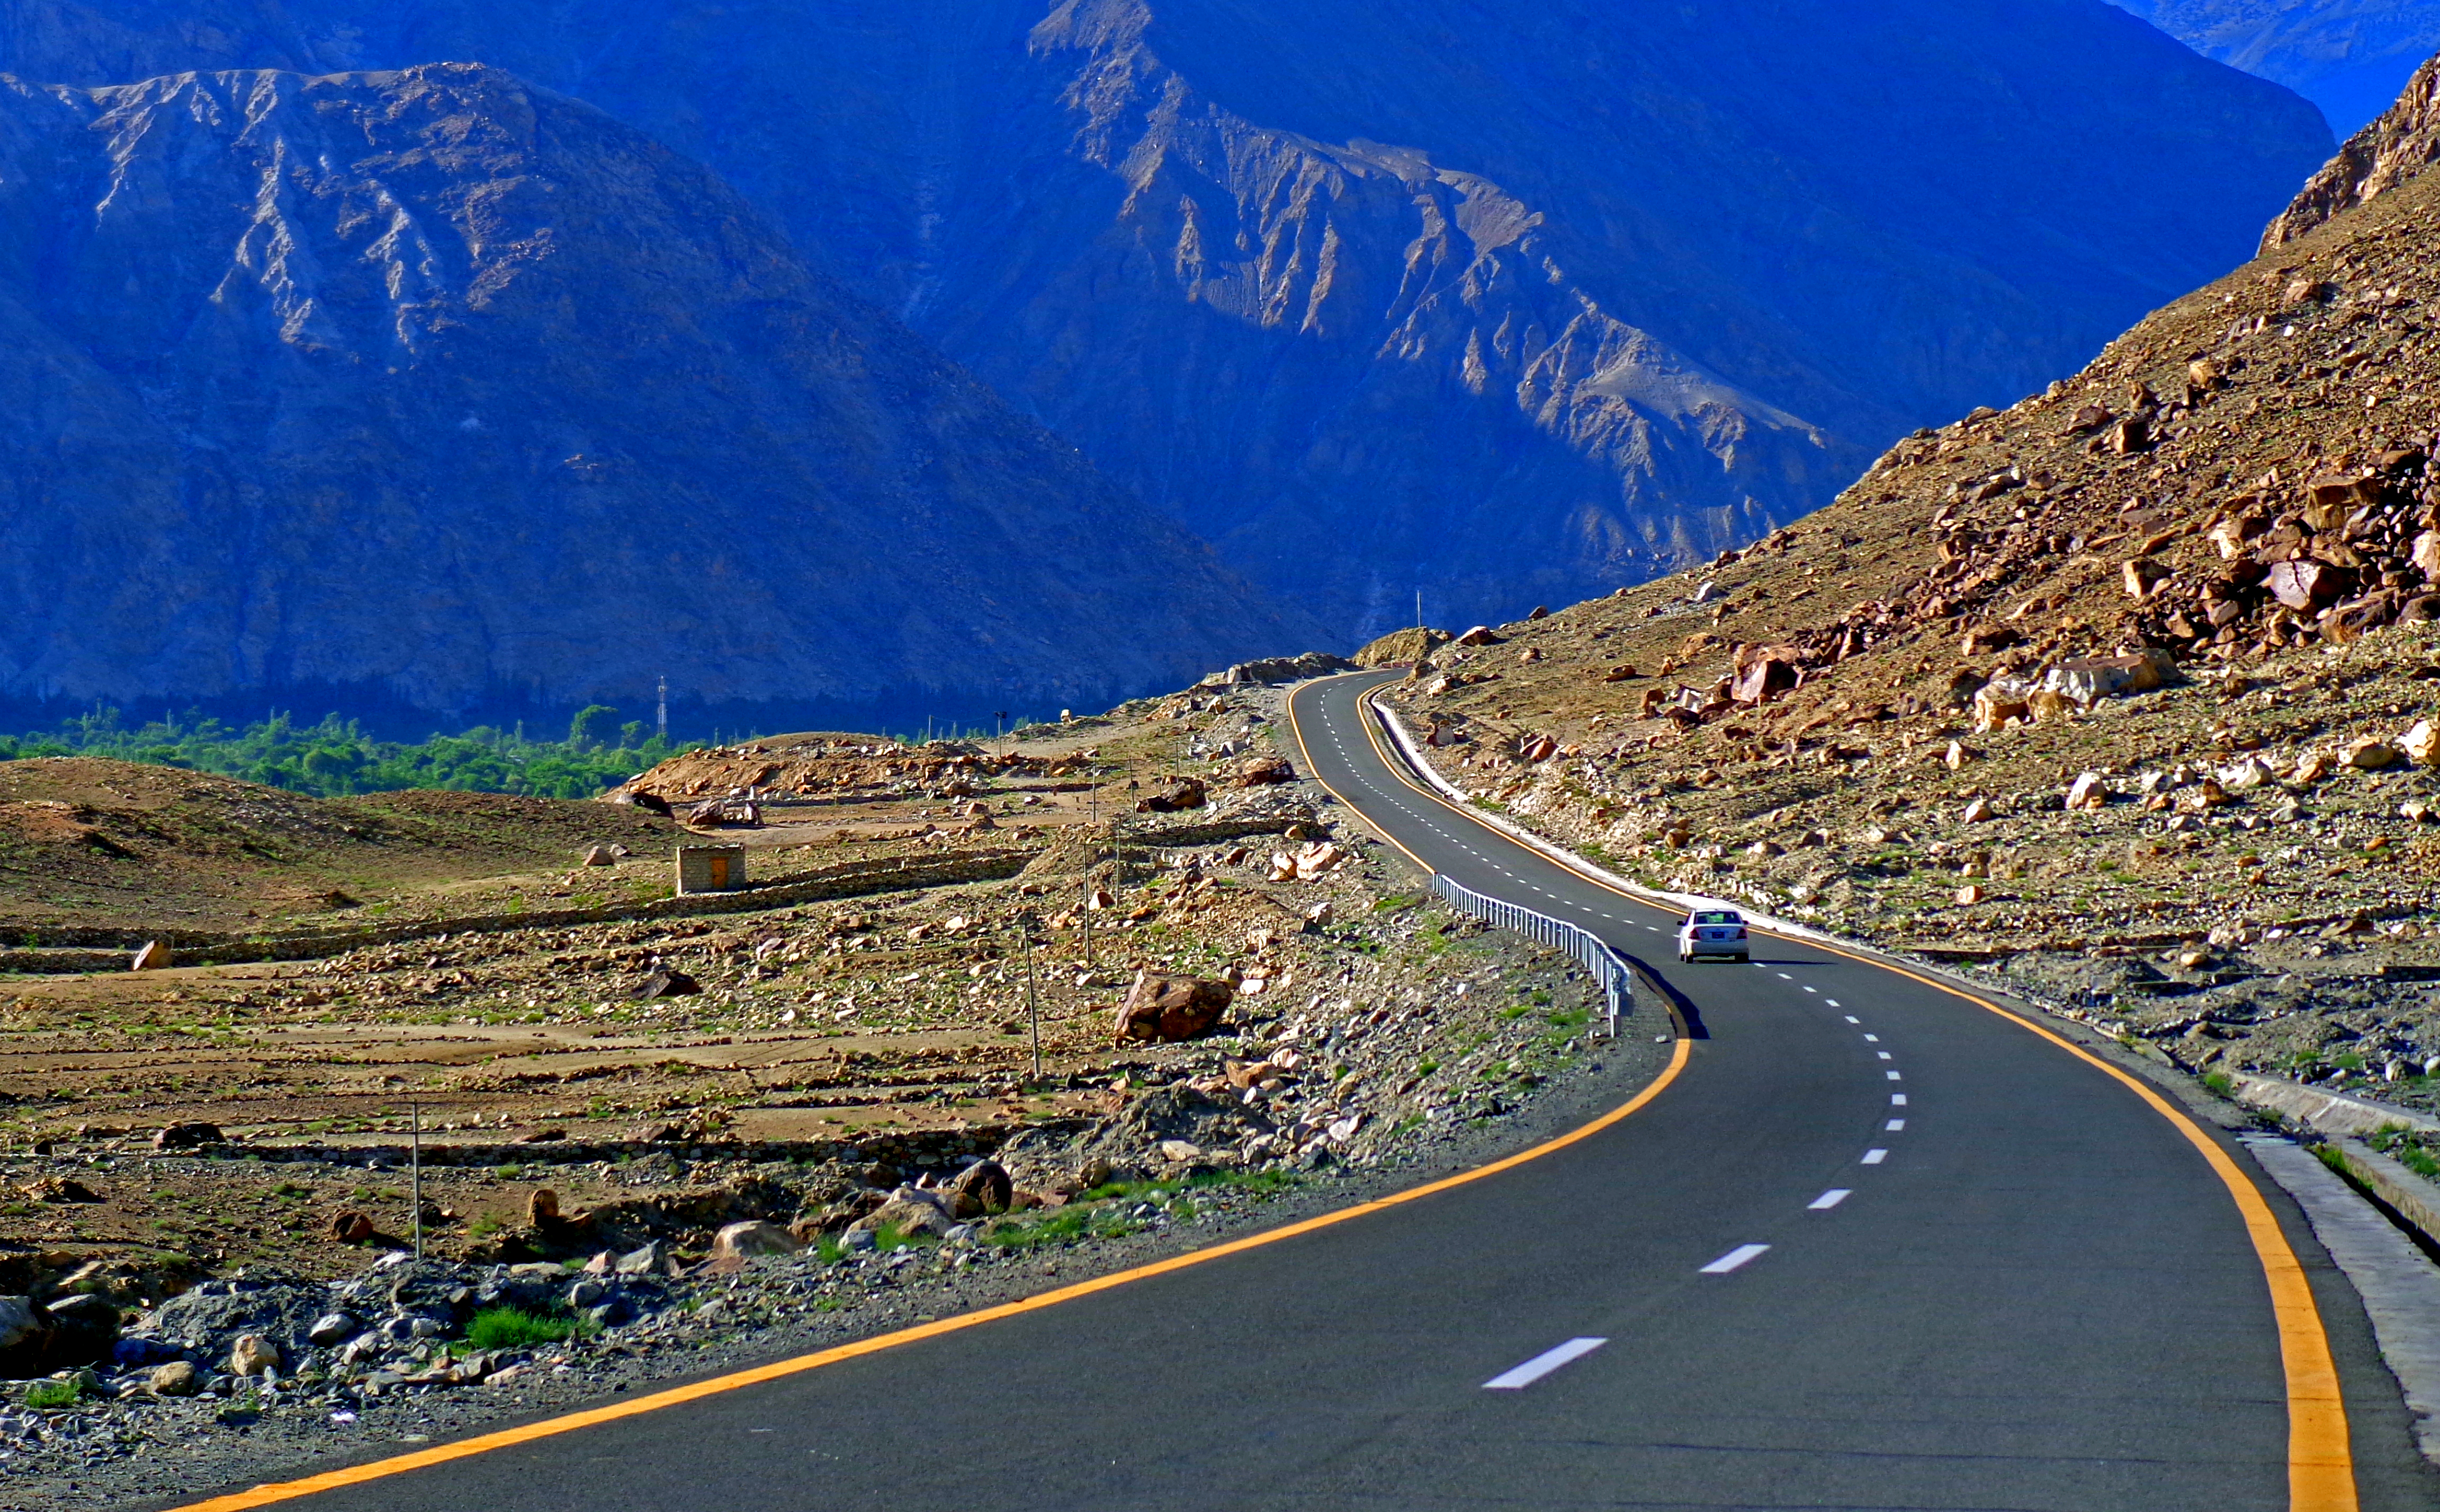 File:The KKH, The wonder of the world, the highway of adventures ...